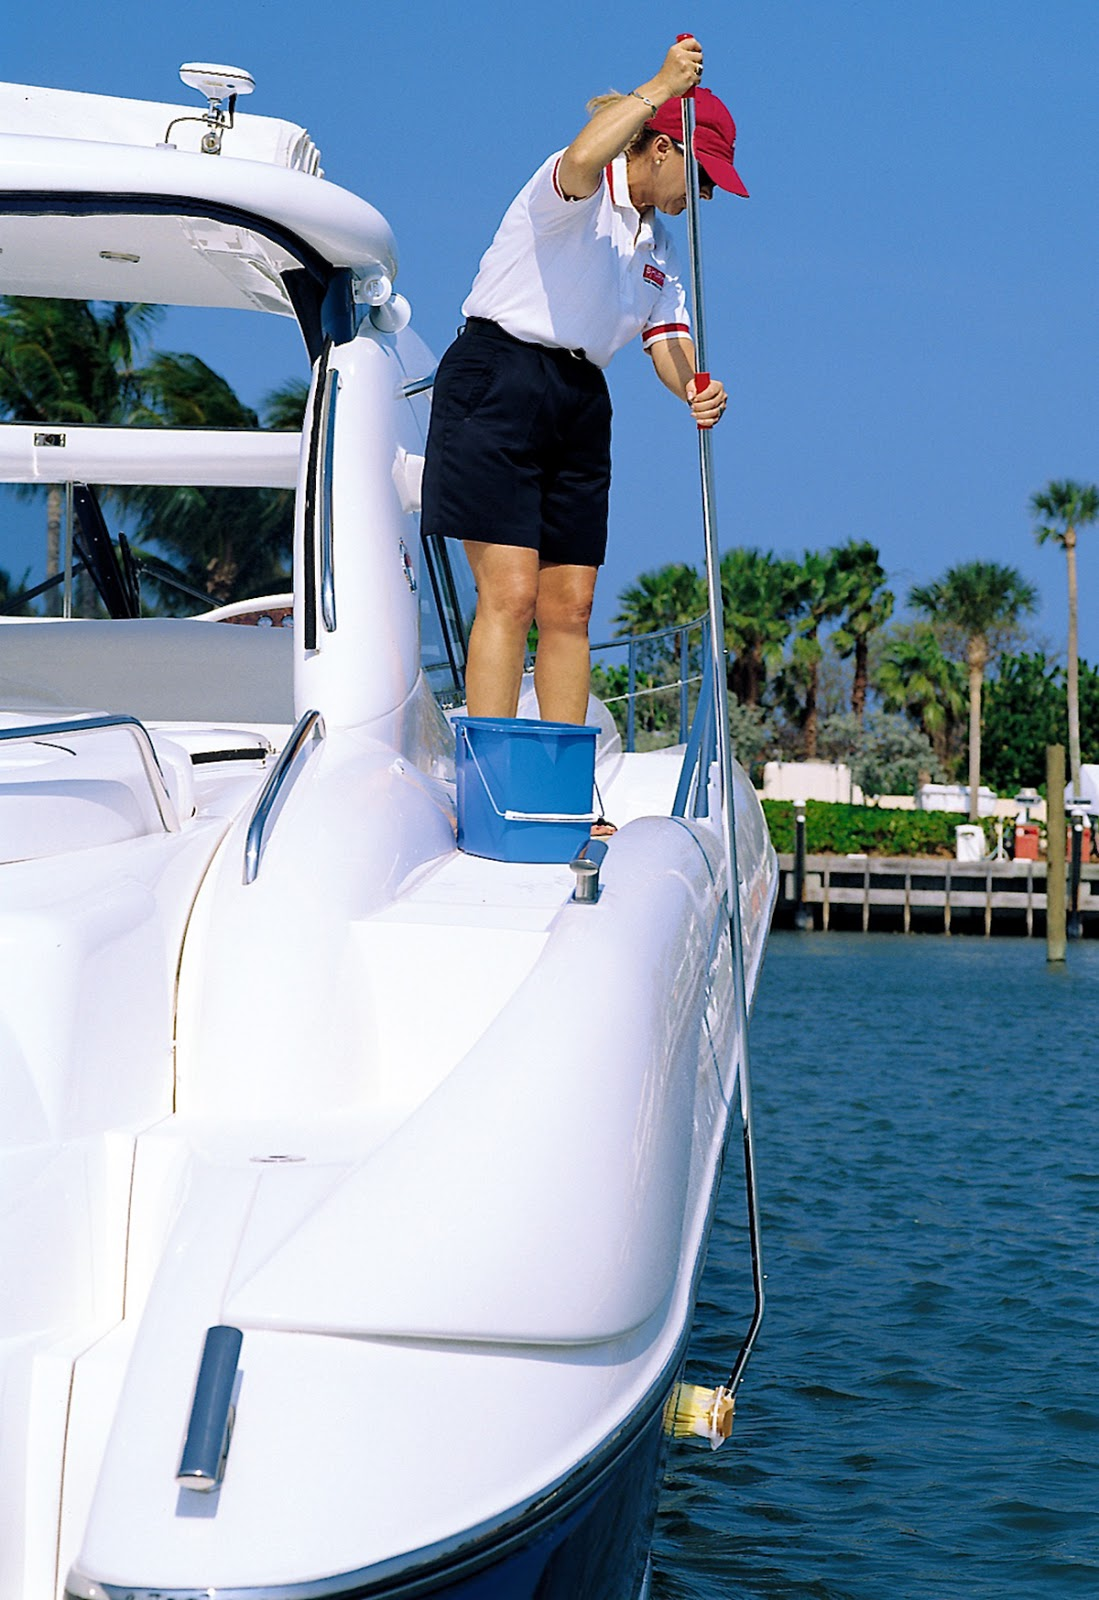 3 Ways to Wash a Boat